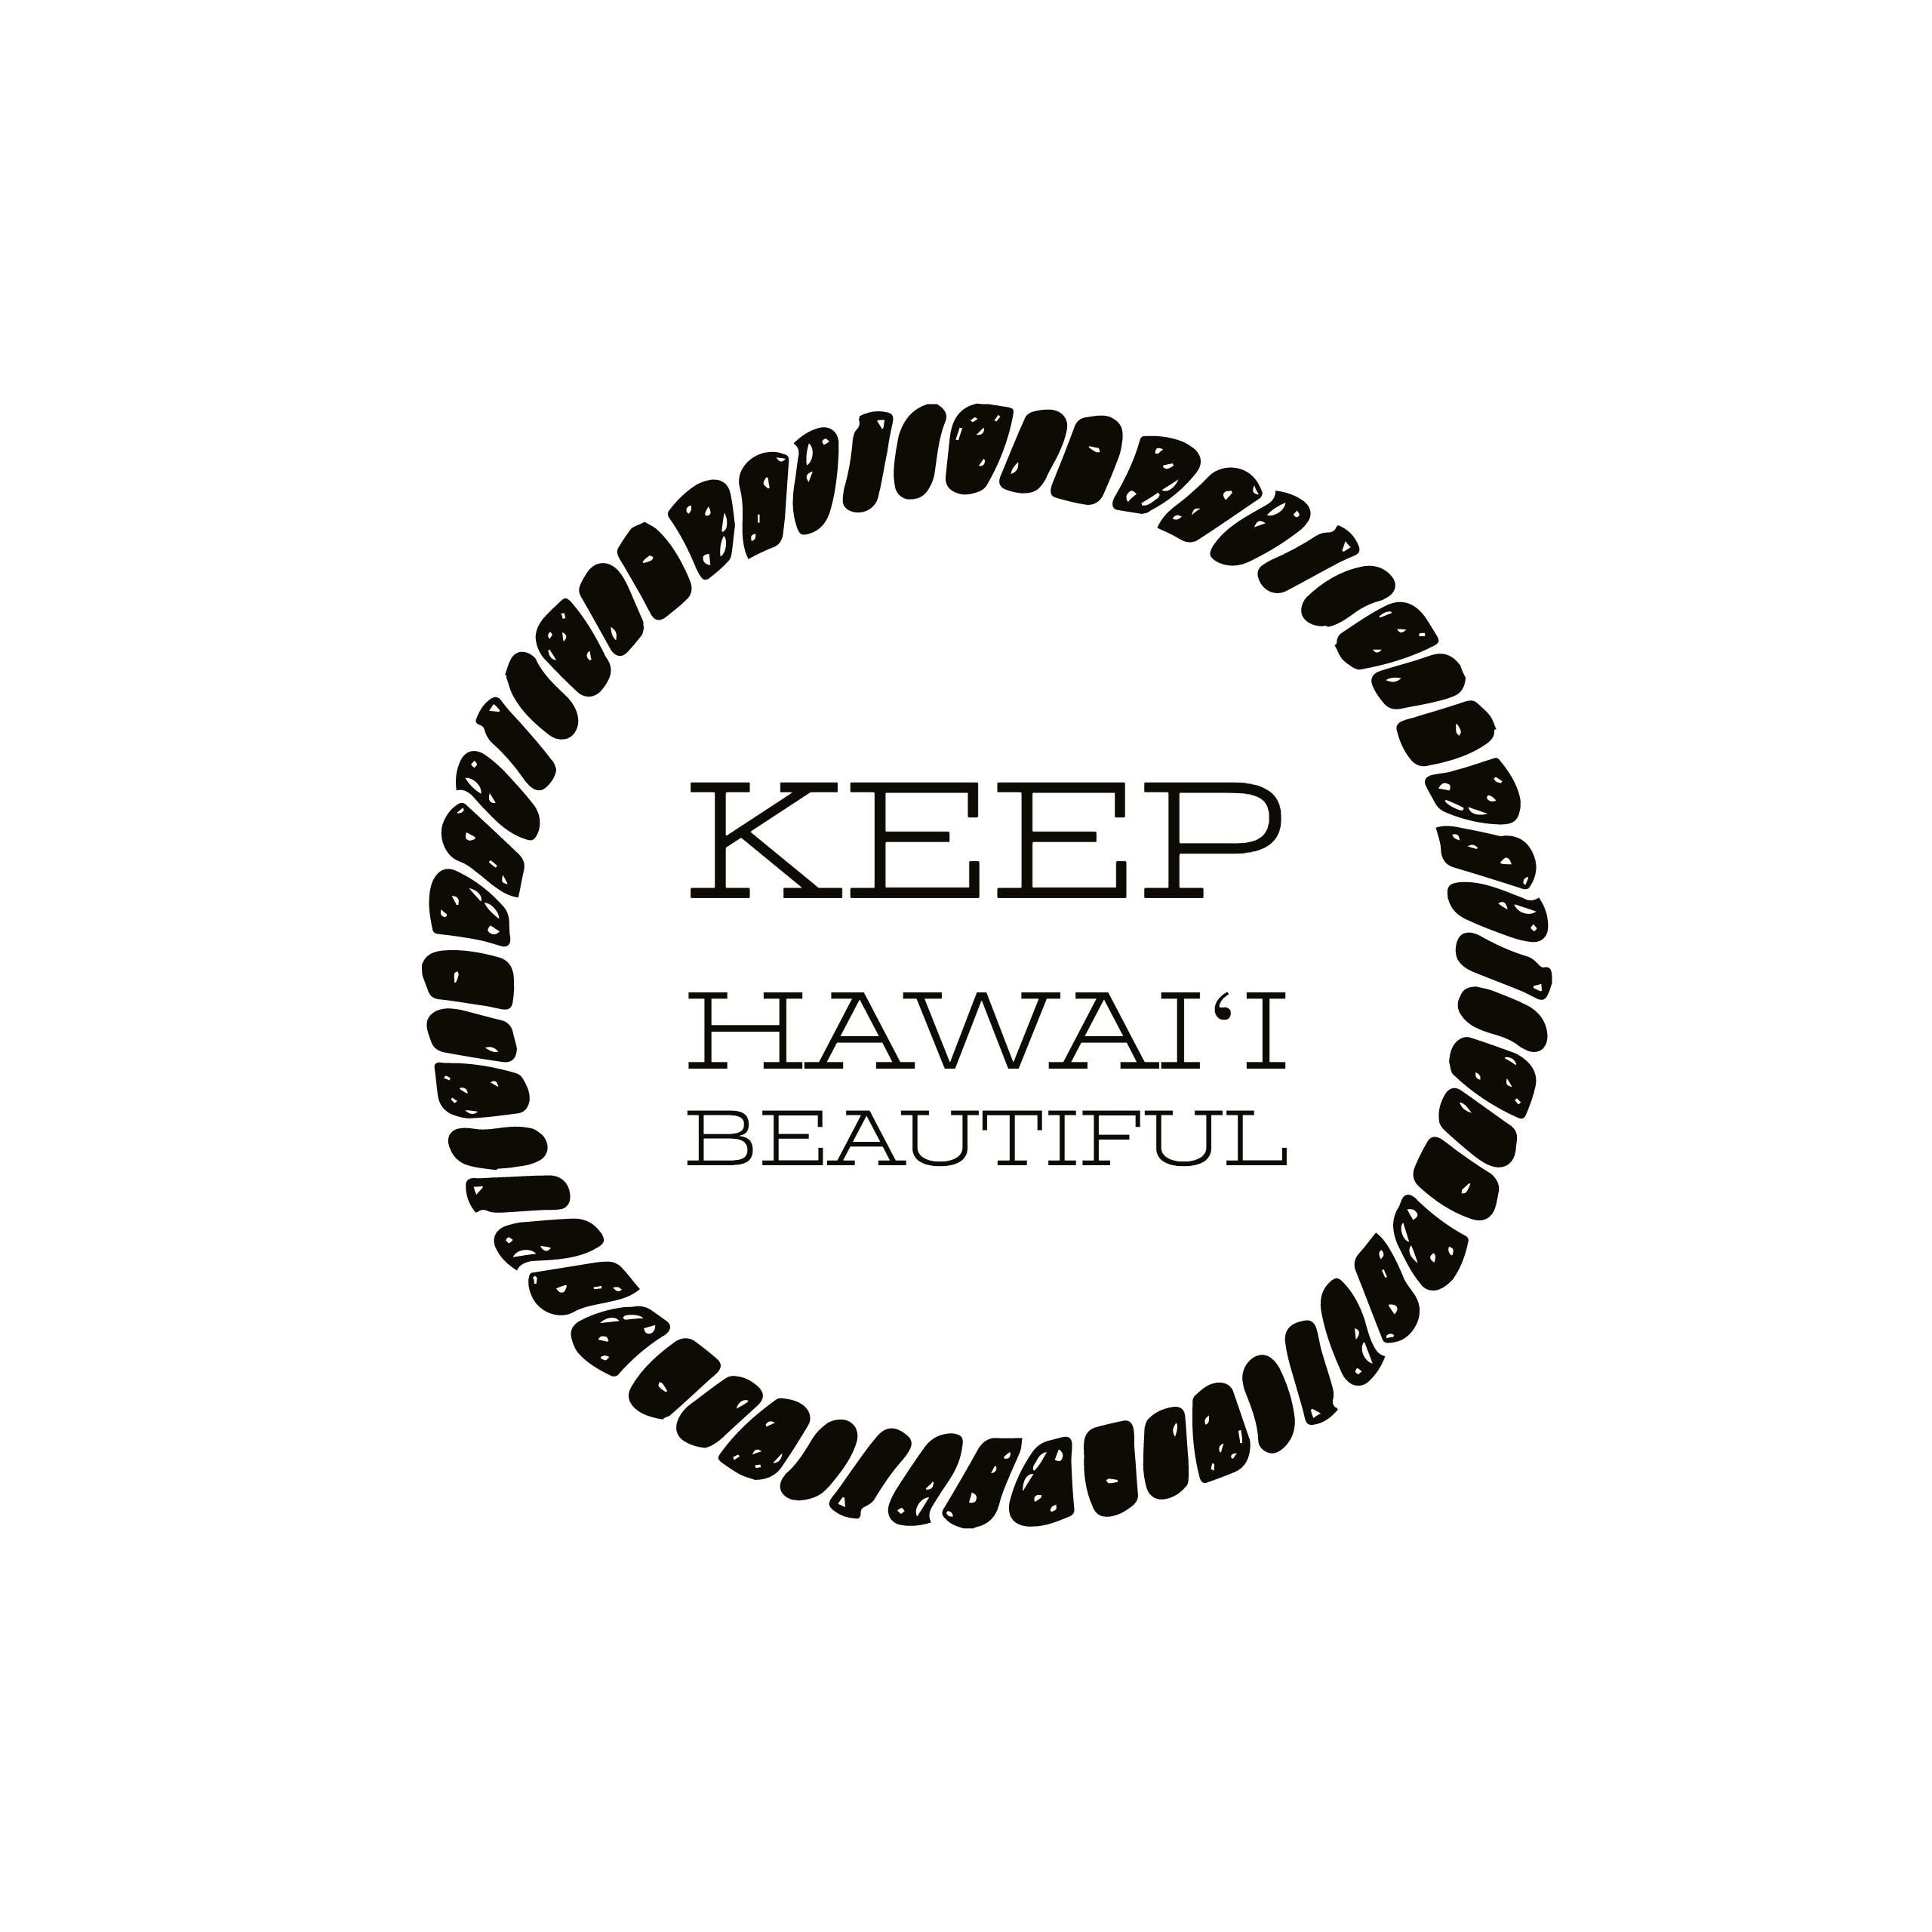 Keep Hawaii Beautiful